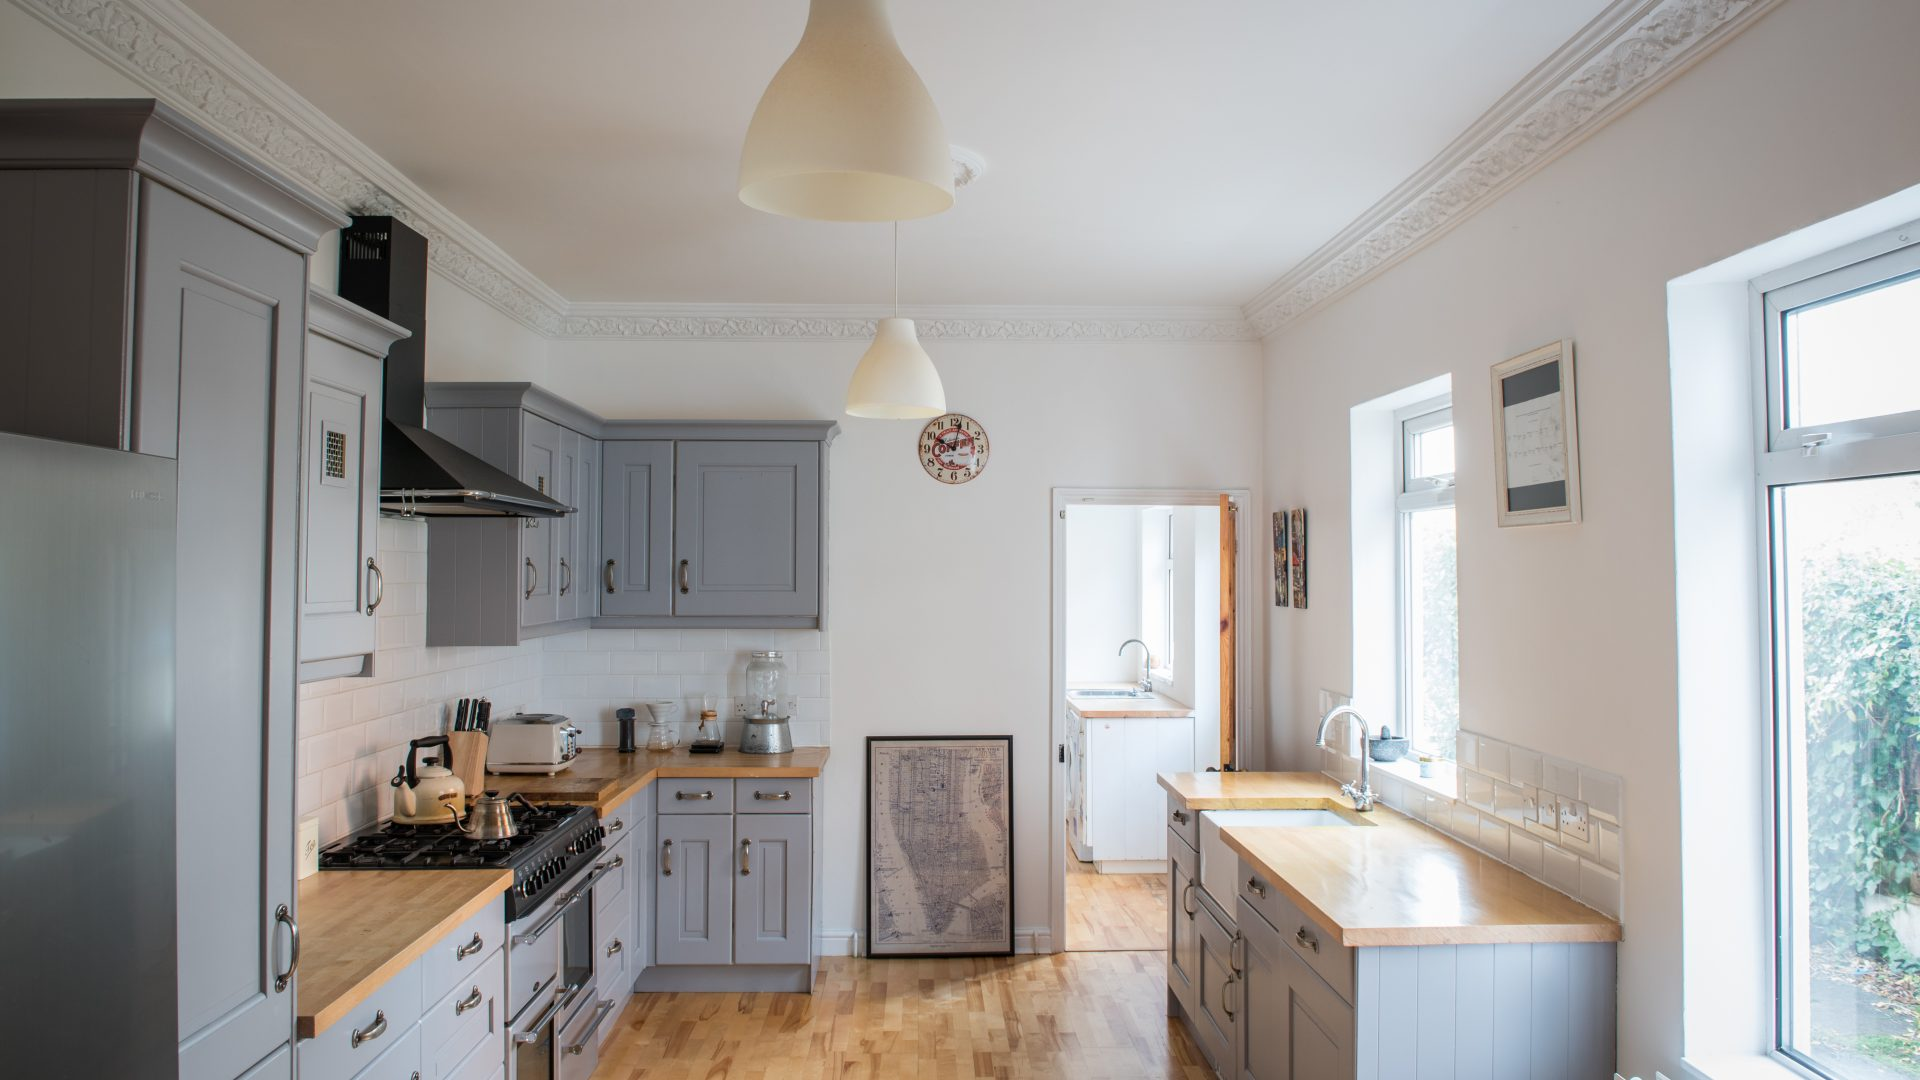 Richmond Road, West Midlands for sale with Mr and Mrs Clarke estate agent